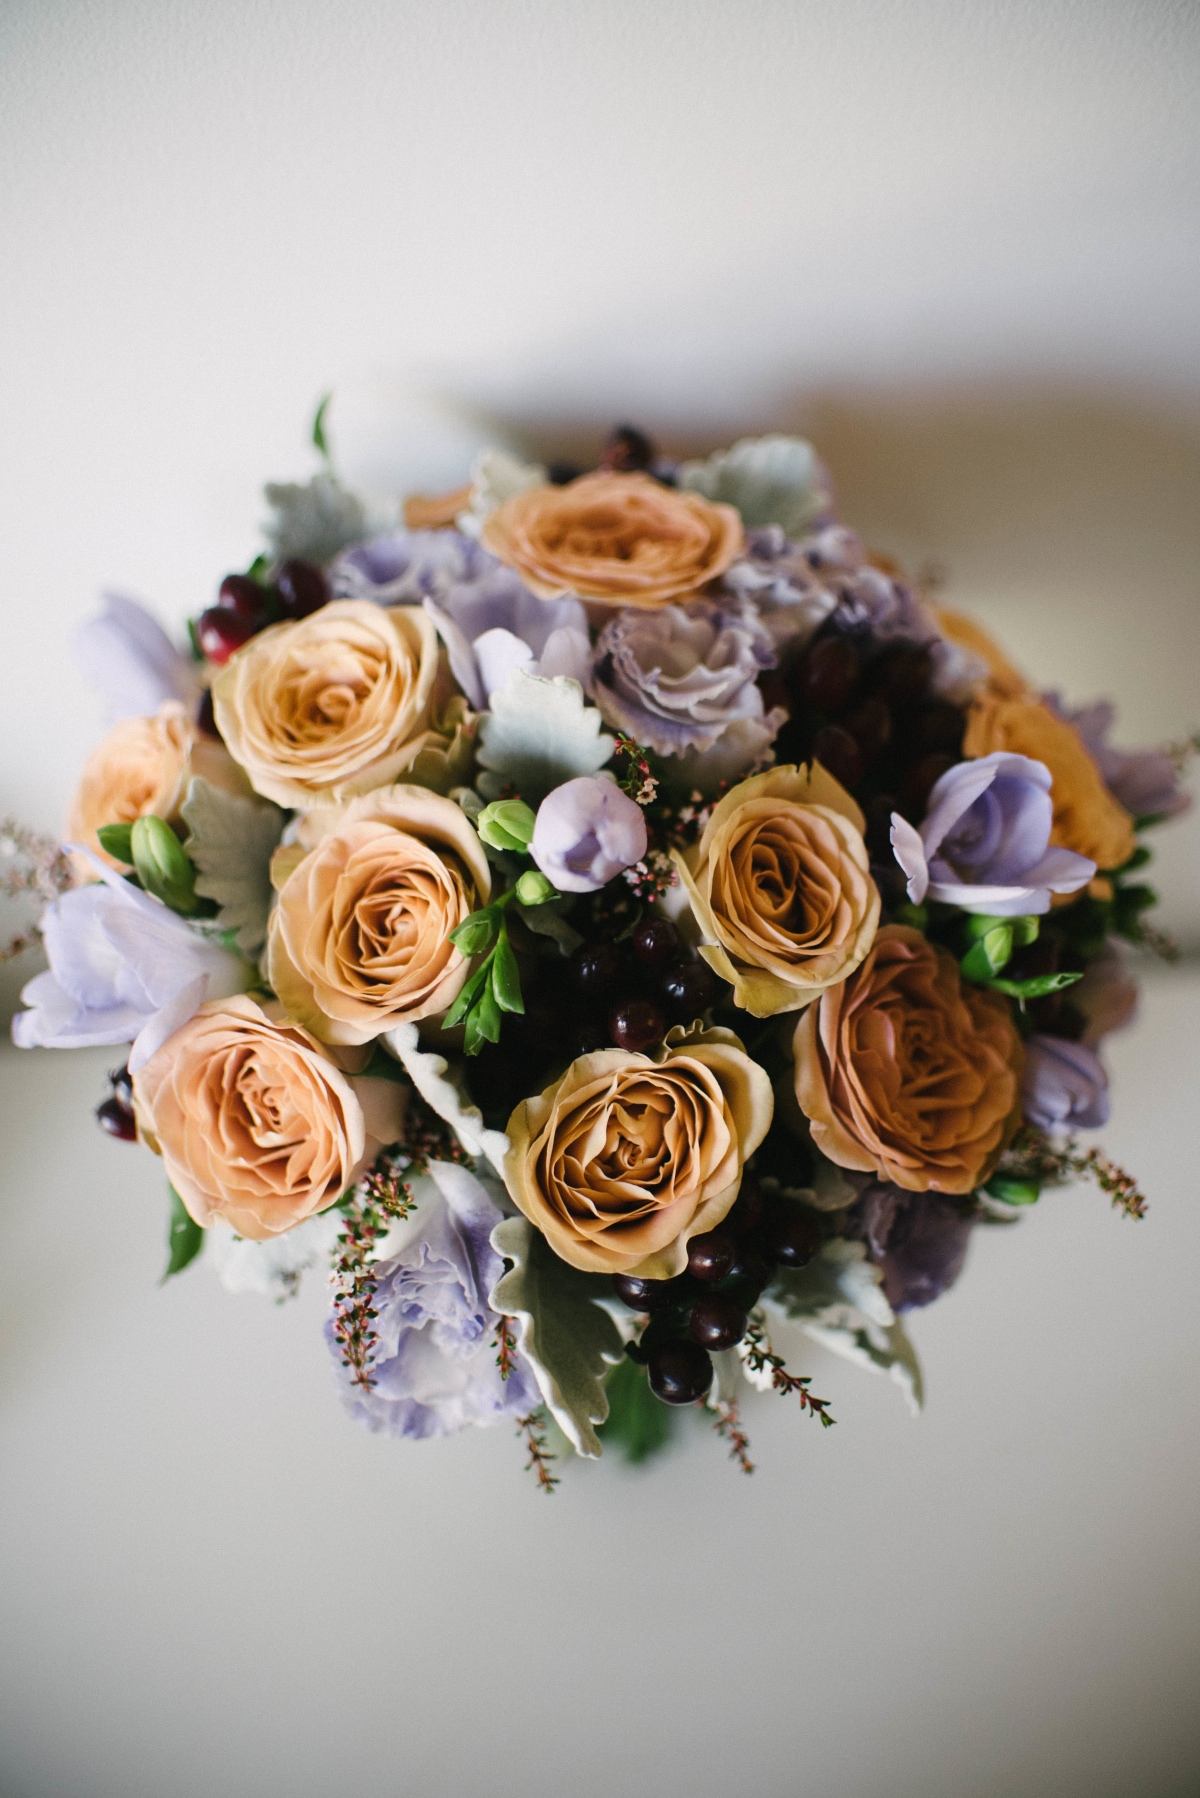 Honeymoon roses, mauve freesia and plum hypericum berry bouquet